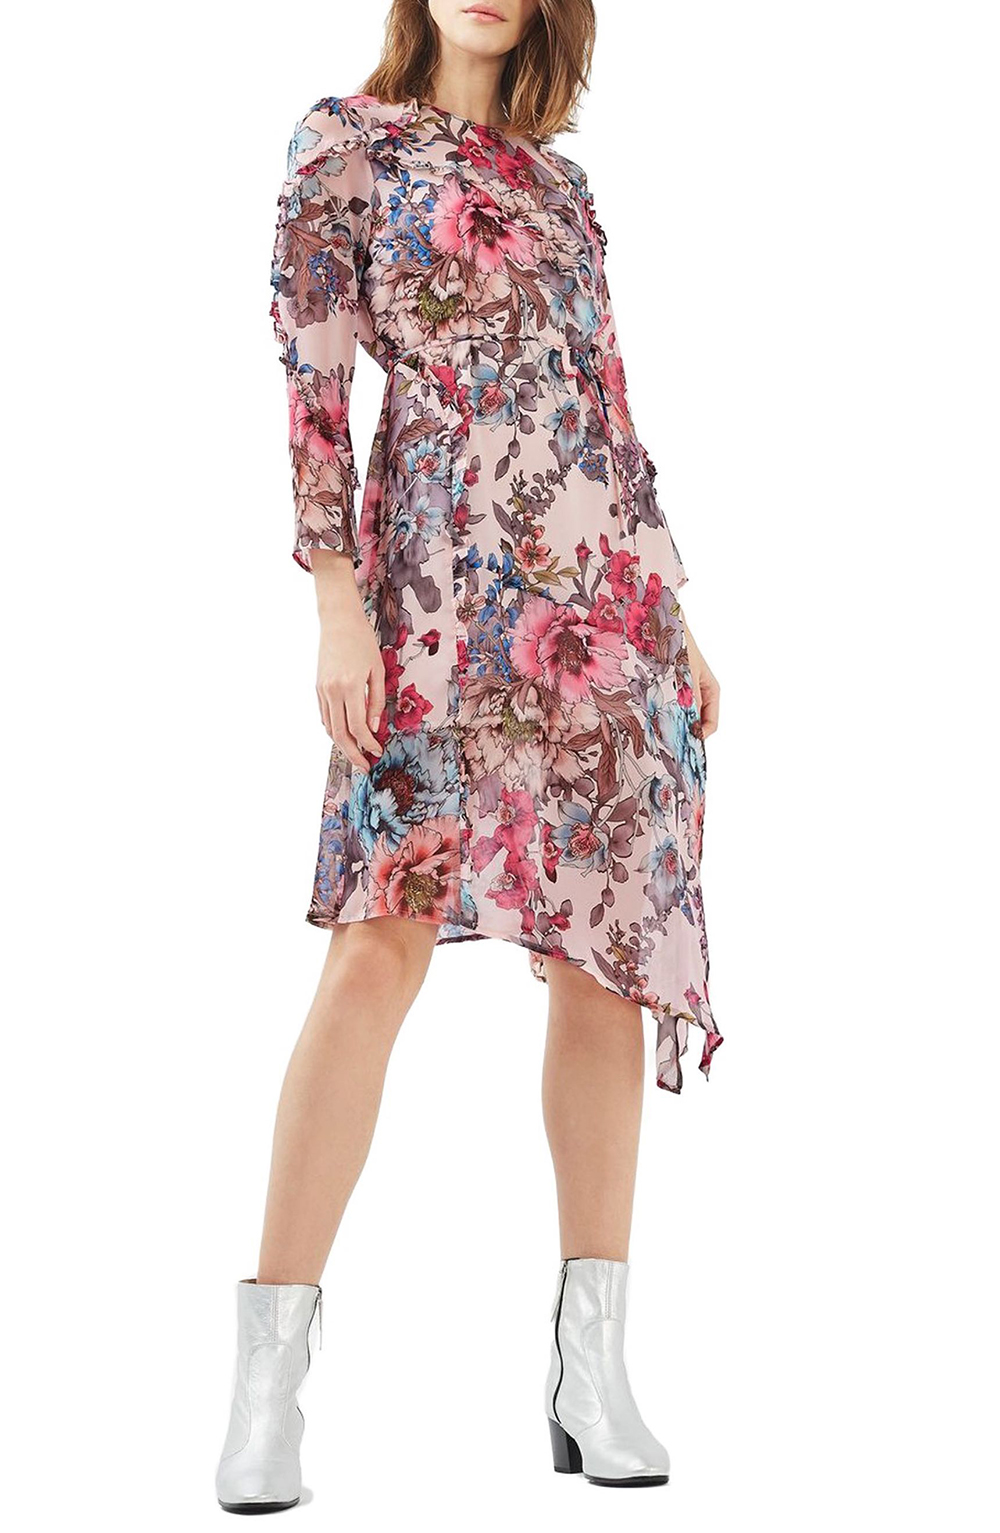 Topshop Pop Floral Ruffle Midi Dress - Wardrobe Refresh: Topshop for Spring